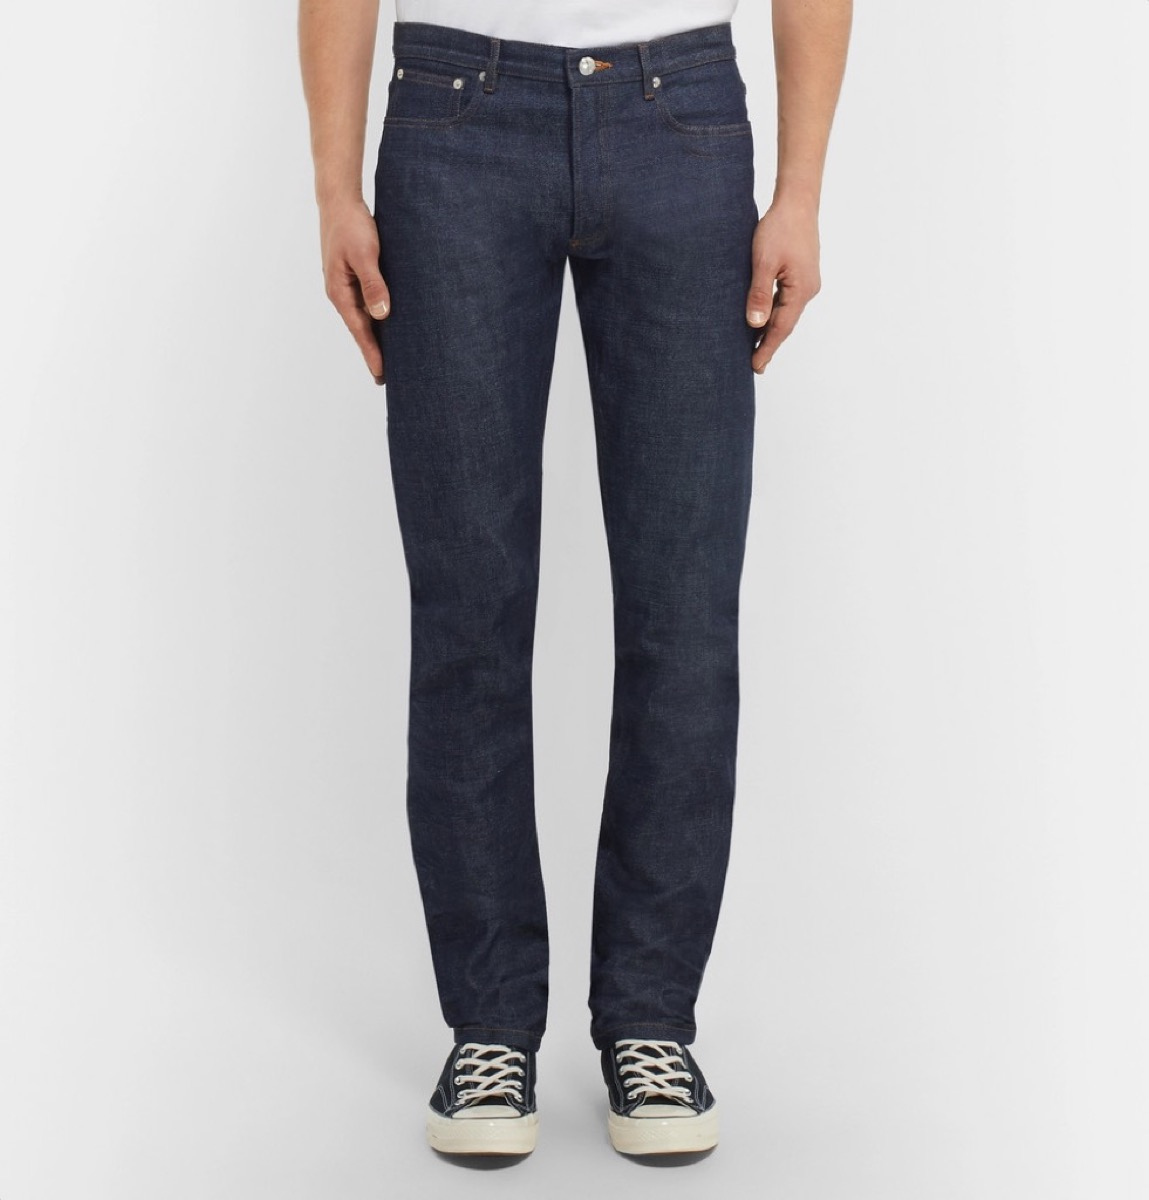 young man in dark blue jeans